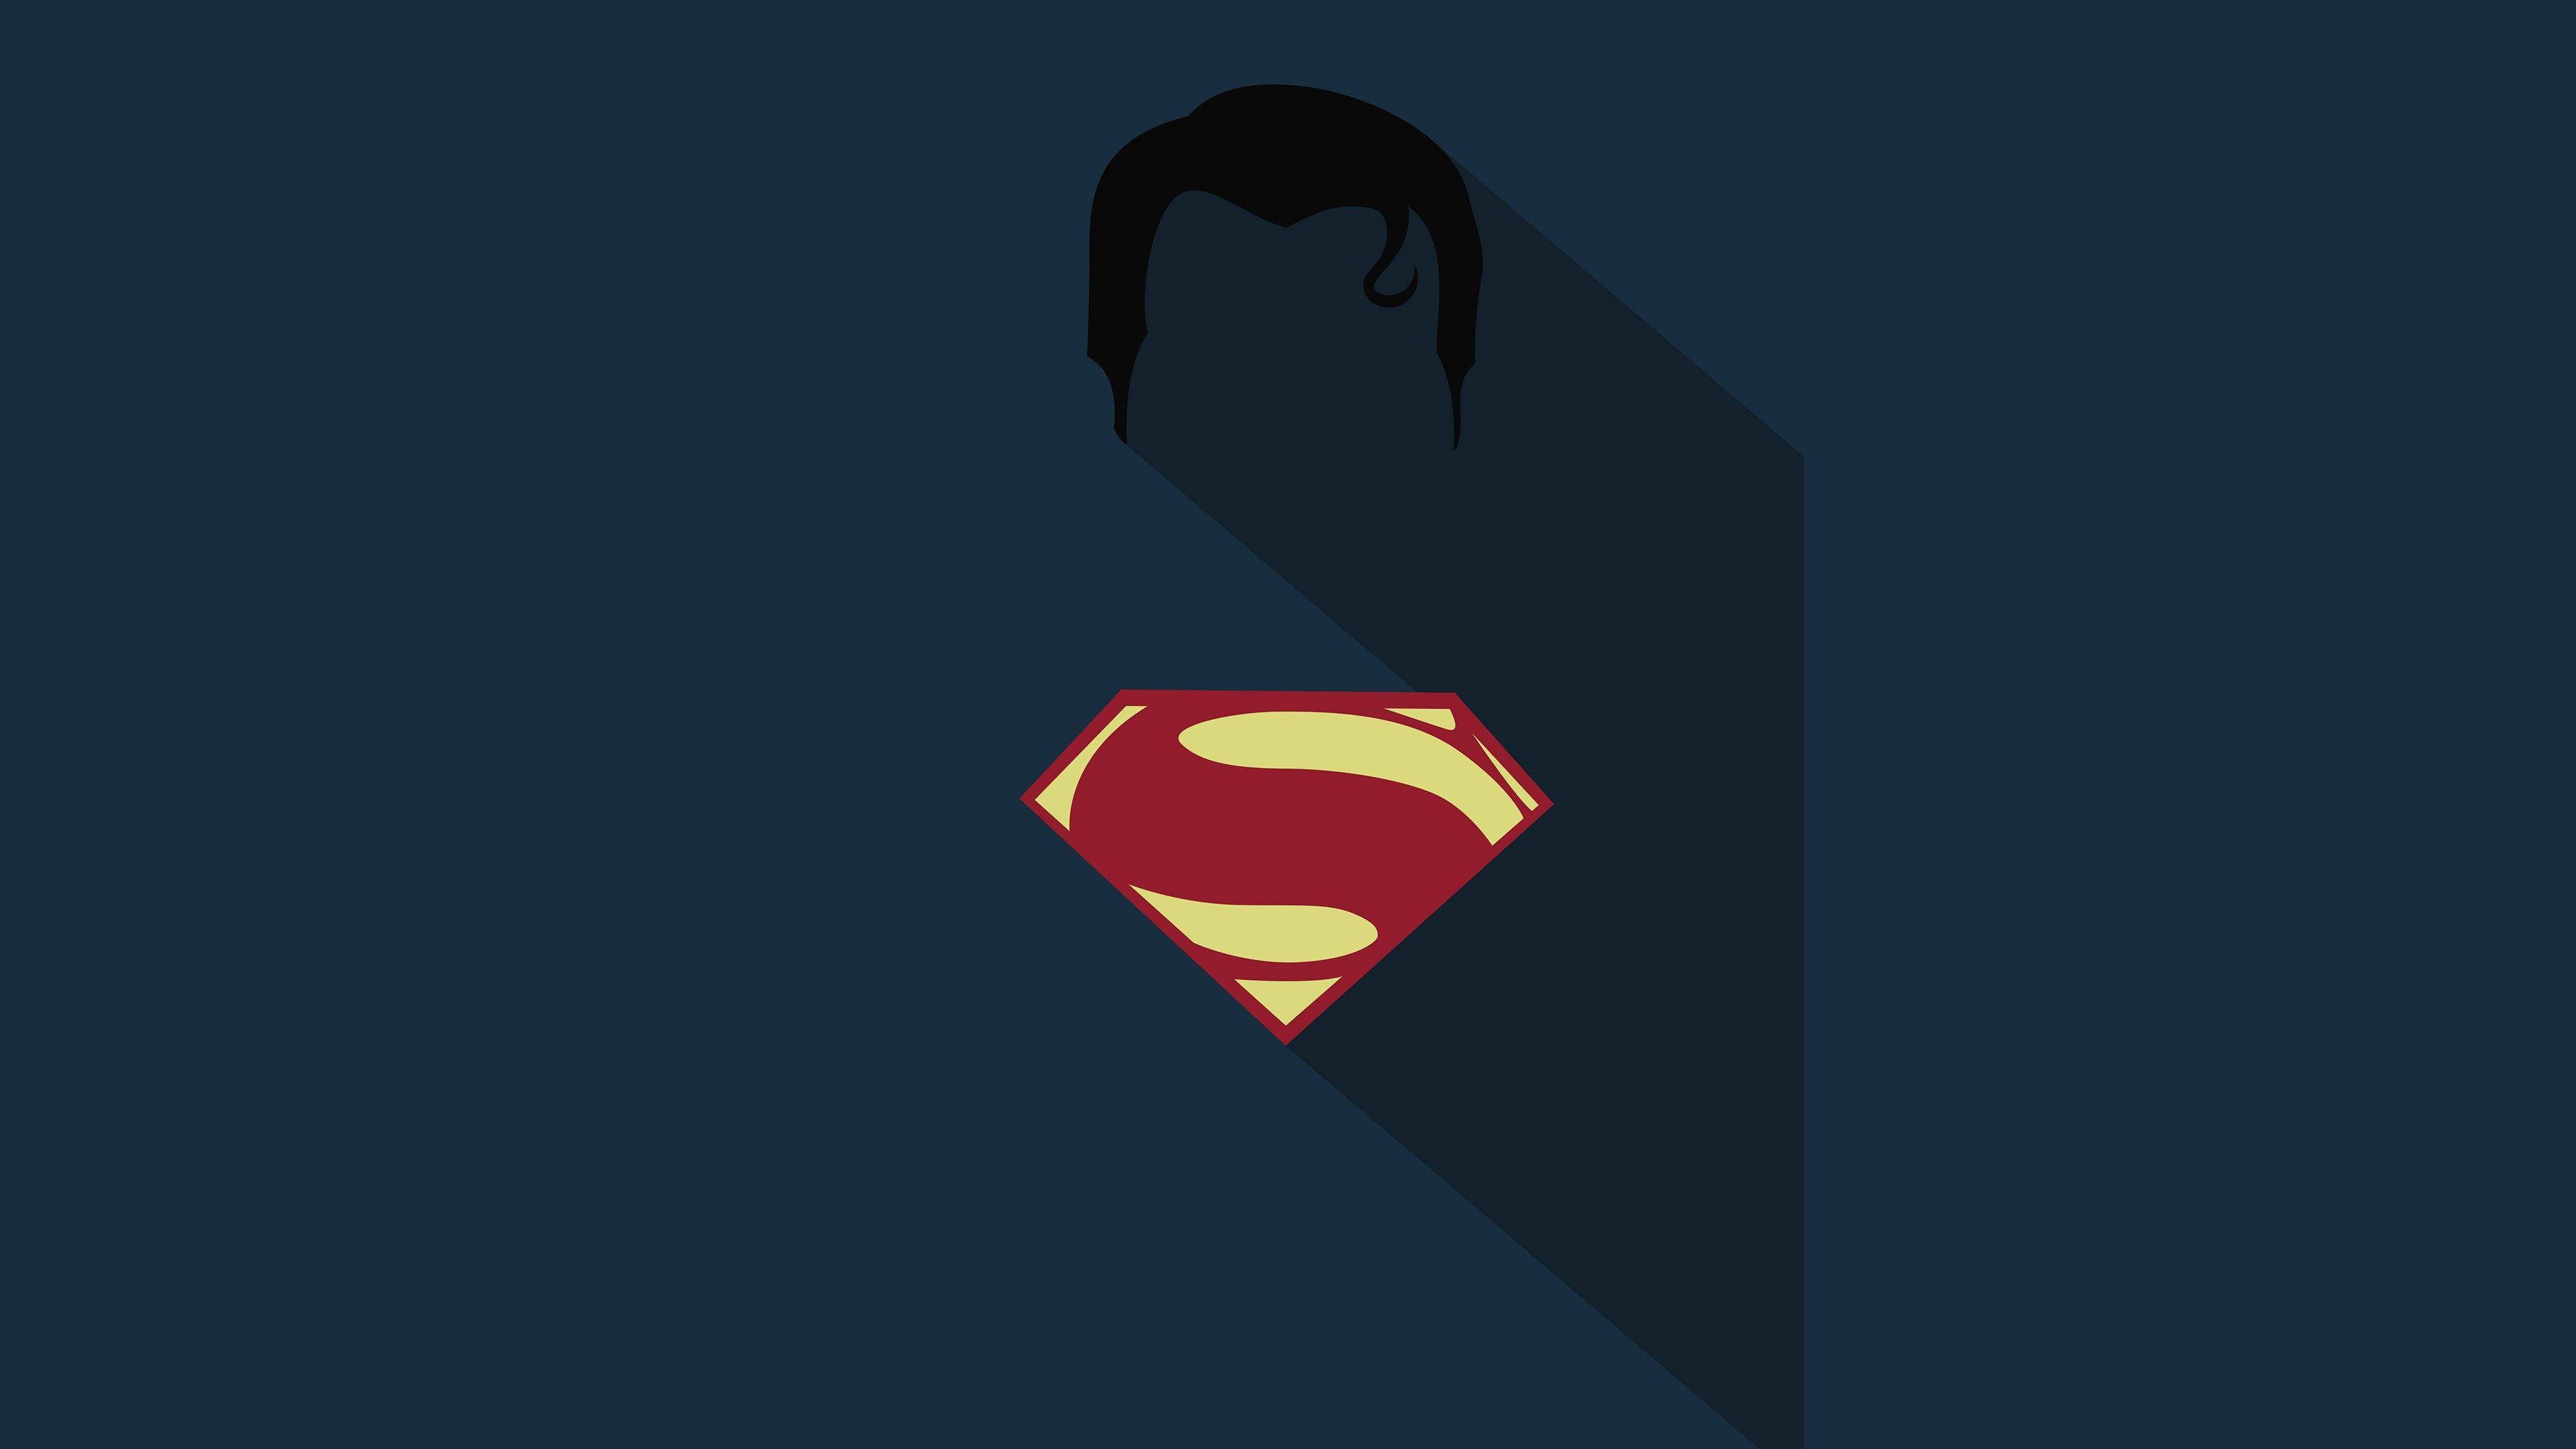 3840x2160 52 4K Ultra HD Superman Wallpapers | Background Images - Wallpaper Abyss